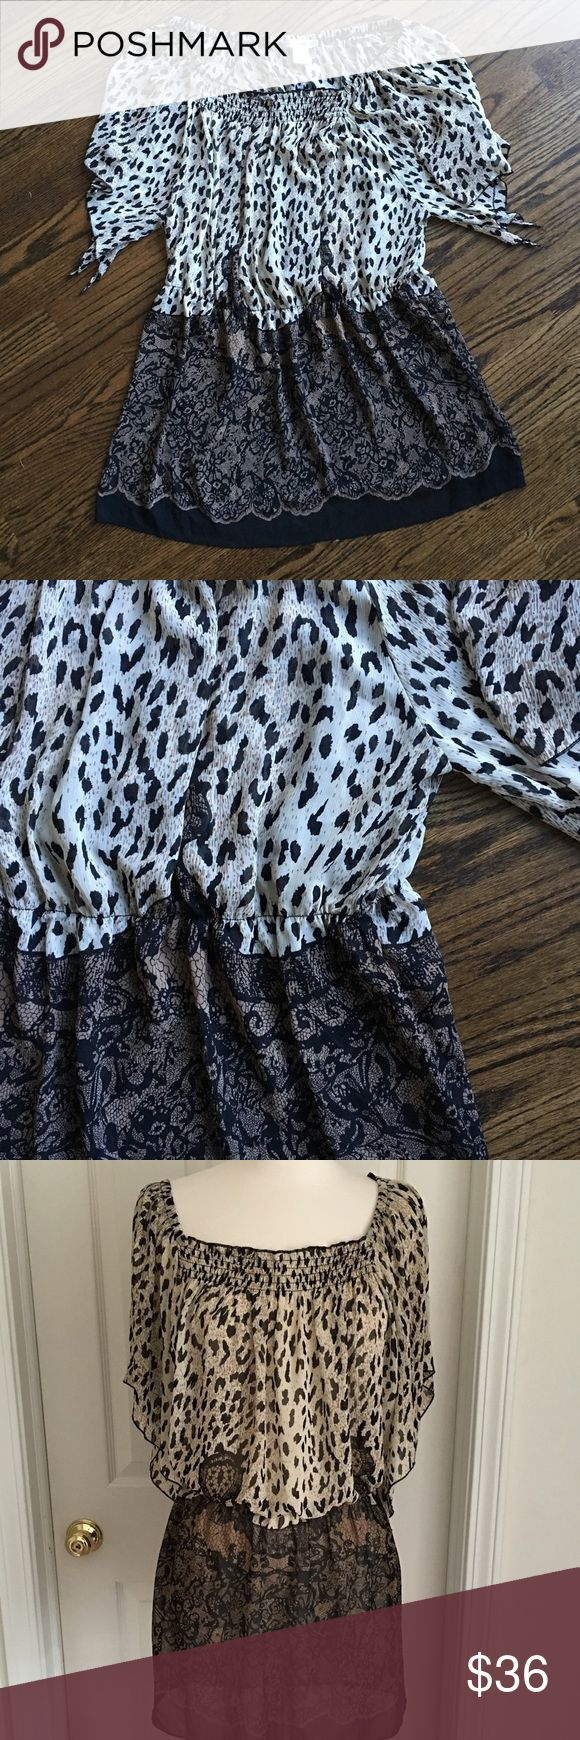 🎄 BOGO 🎄 WD NY Woman animal print tunic Meet Elena. She's a soft romantic tunic from WD.NY Woman and she is ready to accompany you to all your holiday events this year. Light flowy fabric in tans, creams and browns skims your body with fluttery batwing short sleeves, an elastic waist to define your middle and darker pattern on the bottom to flatter your figure. Great over jeans, skirts, leggings. Fabric is sheer and looks great with a tank top underneath. 100% polyester, size 2x. WD NY…